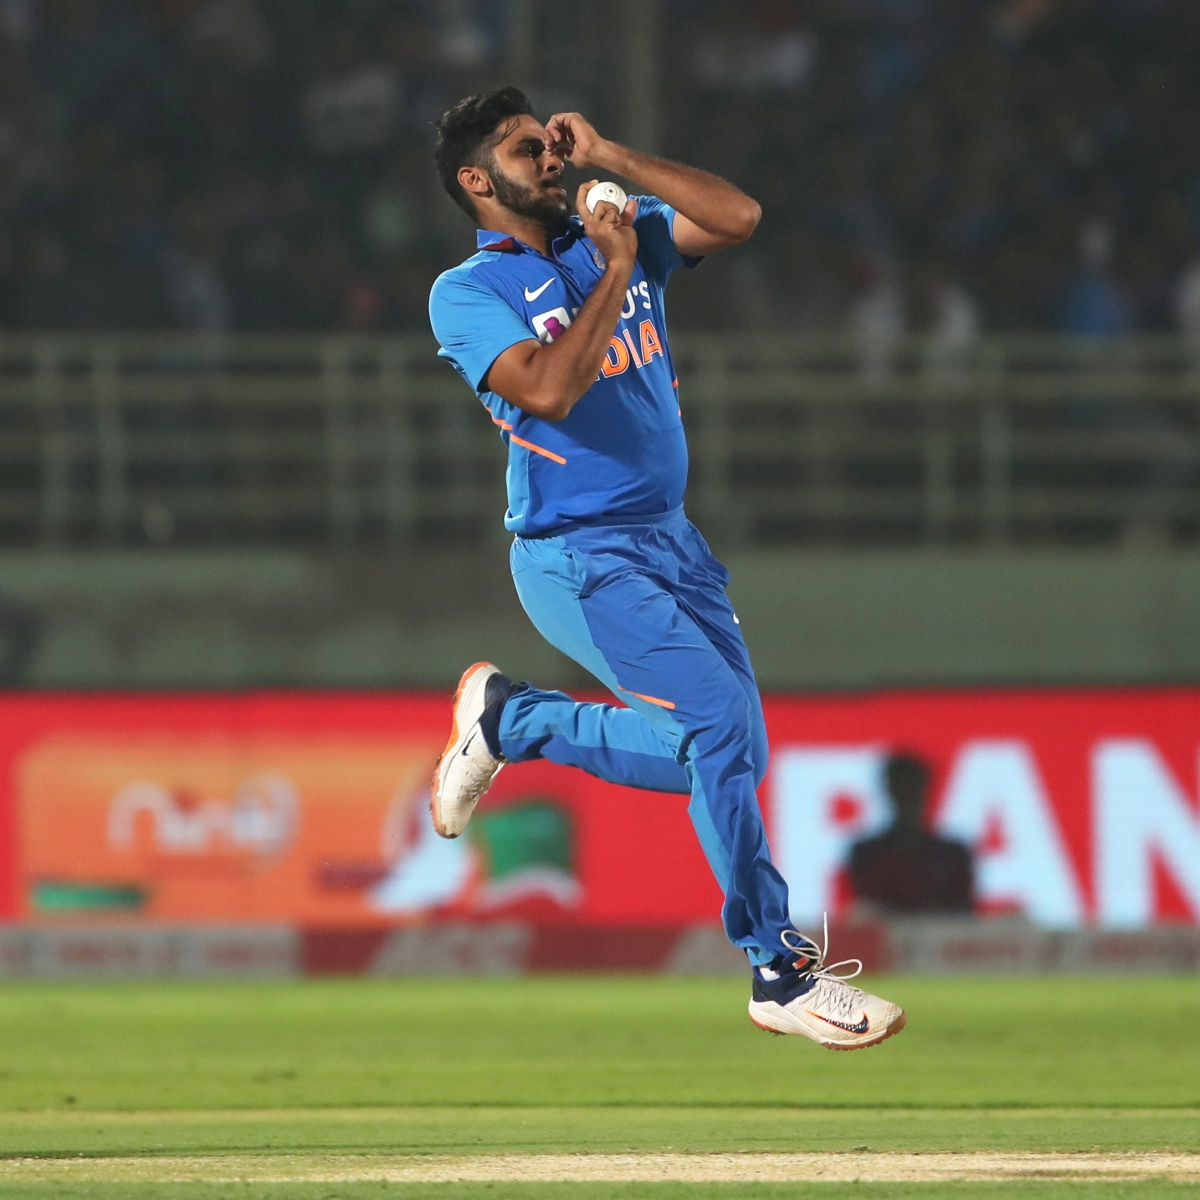 'M in his name stands for match-winner': Twitter trolls Shardul Thakur for off-beat deliveries